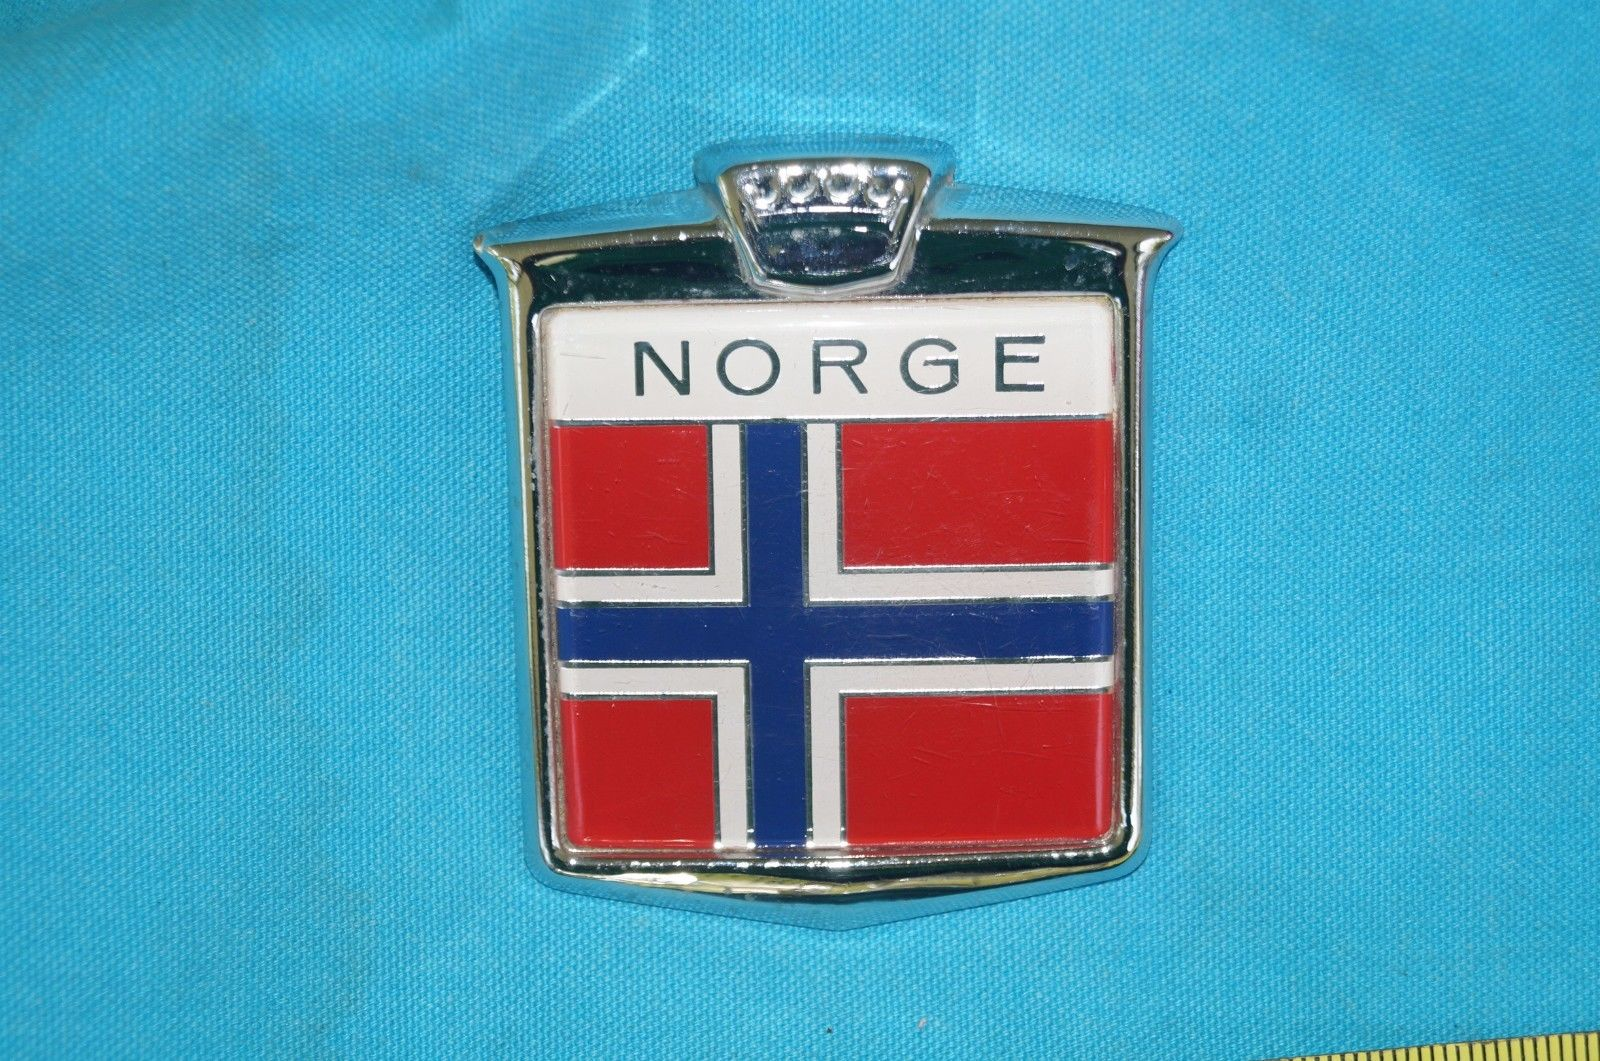 NORGE BADGE EMBLEM Ornament  3 inches